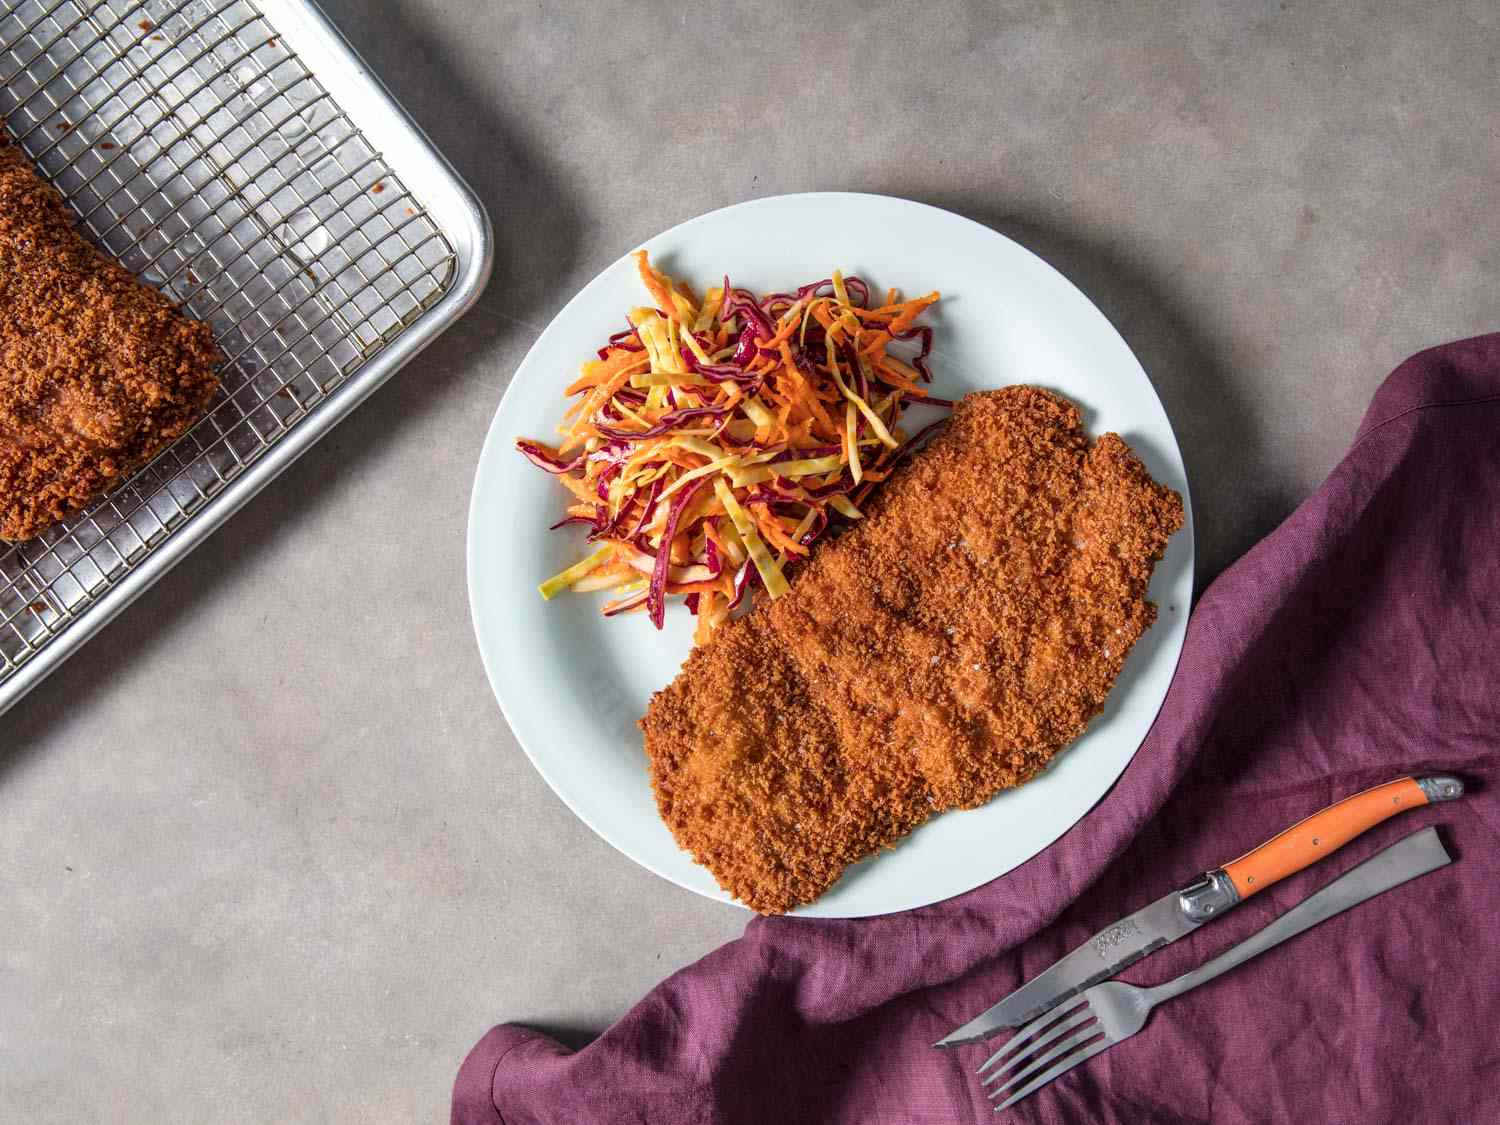 Breaded pork cutlet with slaw overhead view